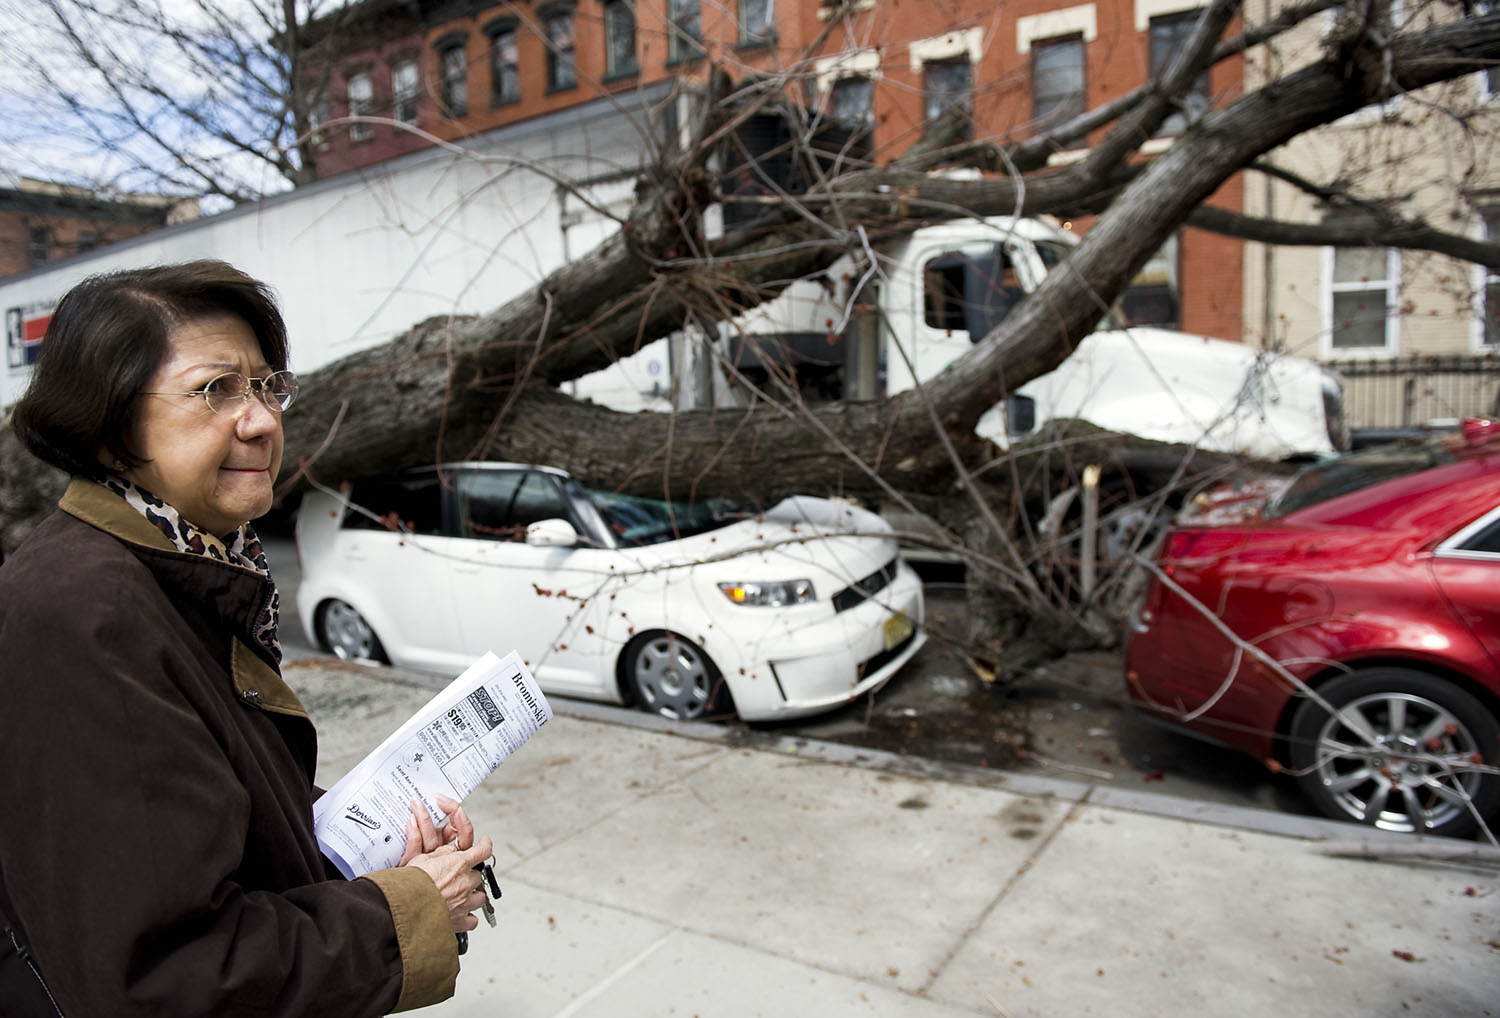 A tractor trailer carrying organic foods to a city co-op this afternoon clipped the limb of a tree on Ninth Street near Hamilton Park, ripping the tree out of the ground and sending it crashing on two parked cars. Luz Crisostomo, the driver of the white Scion, says she was praying at St. Michael's Church of St. Jude nearby when the tree fell on the car. (Reena Rose Sibayan | The Jersey Journal)